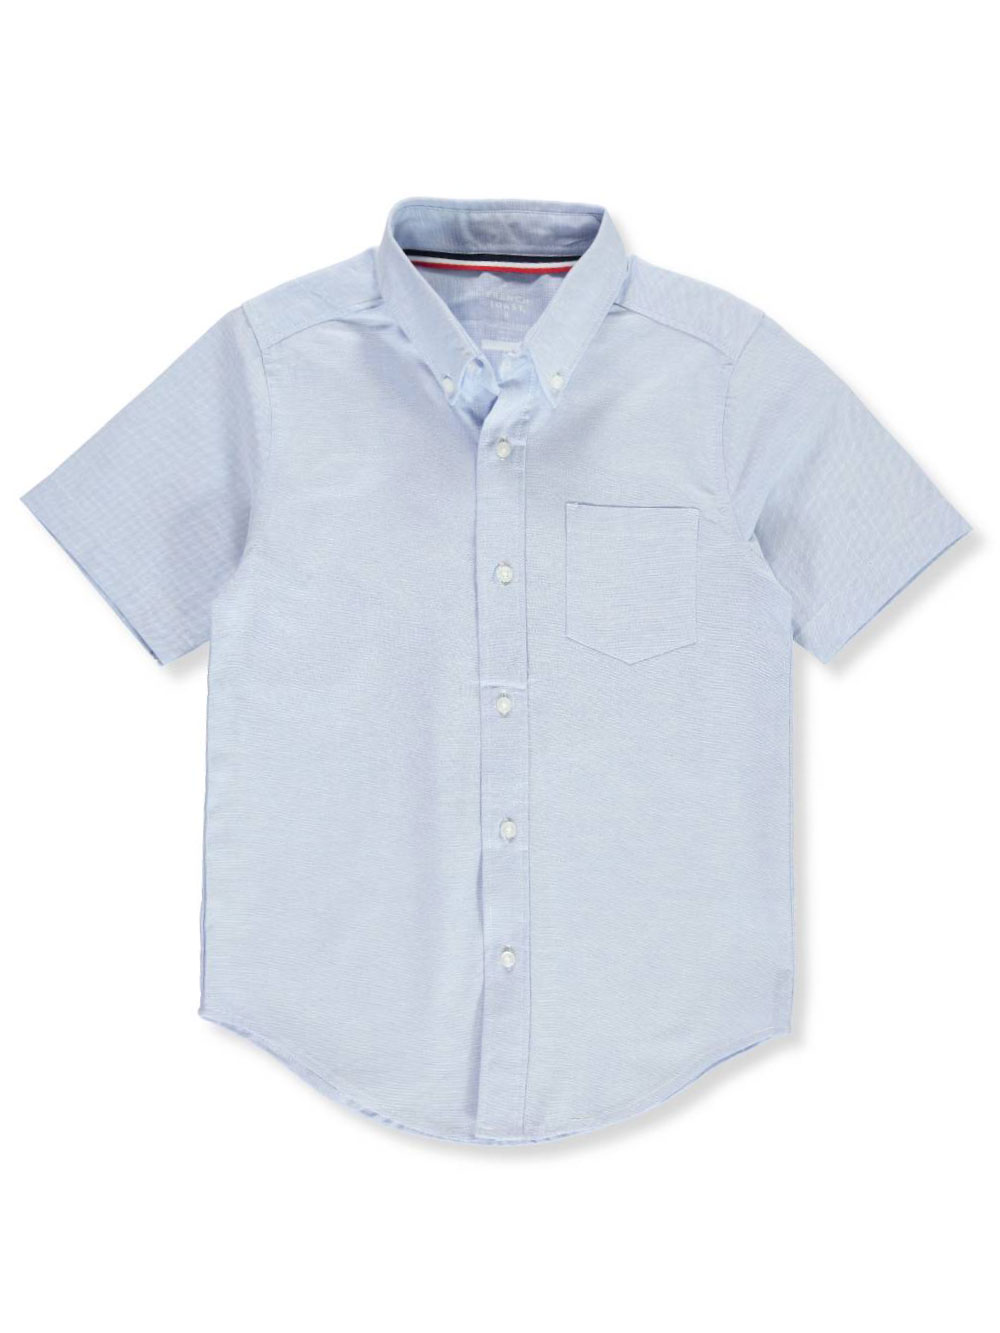 Uniforms s and s Button-Down Shirt